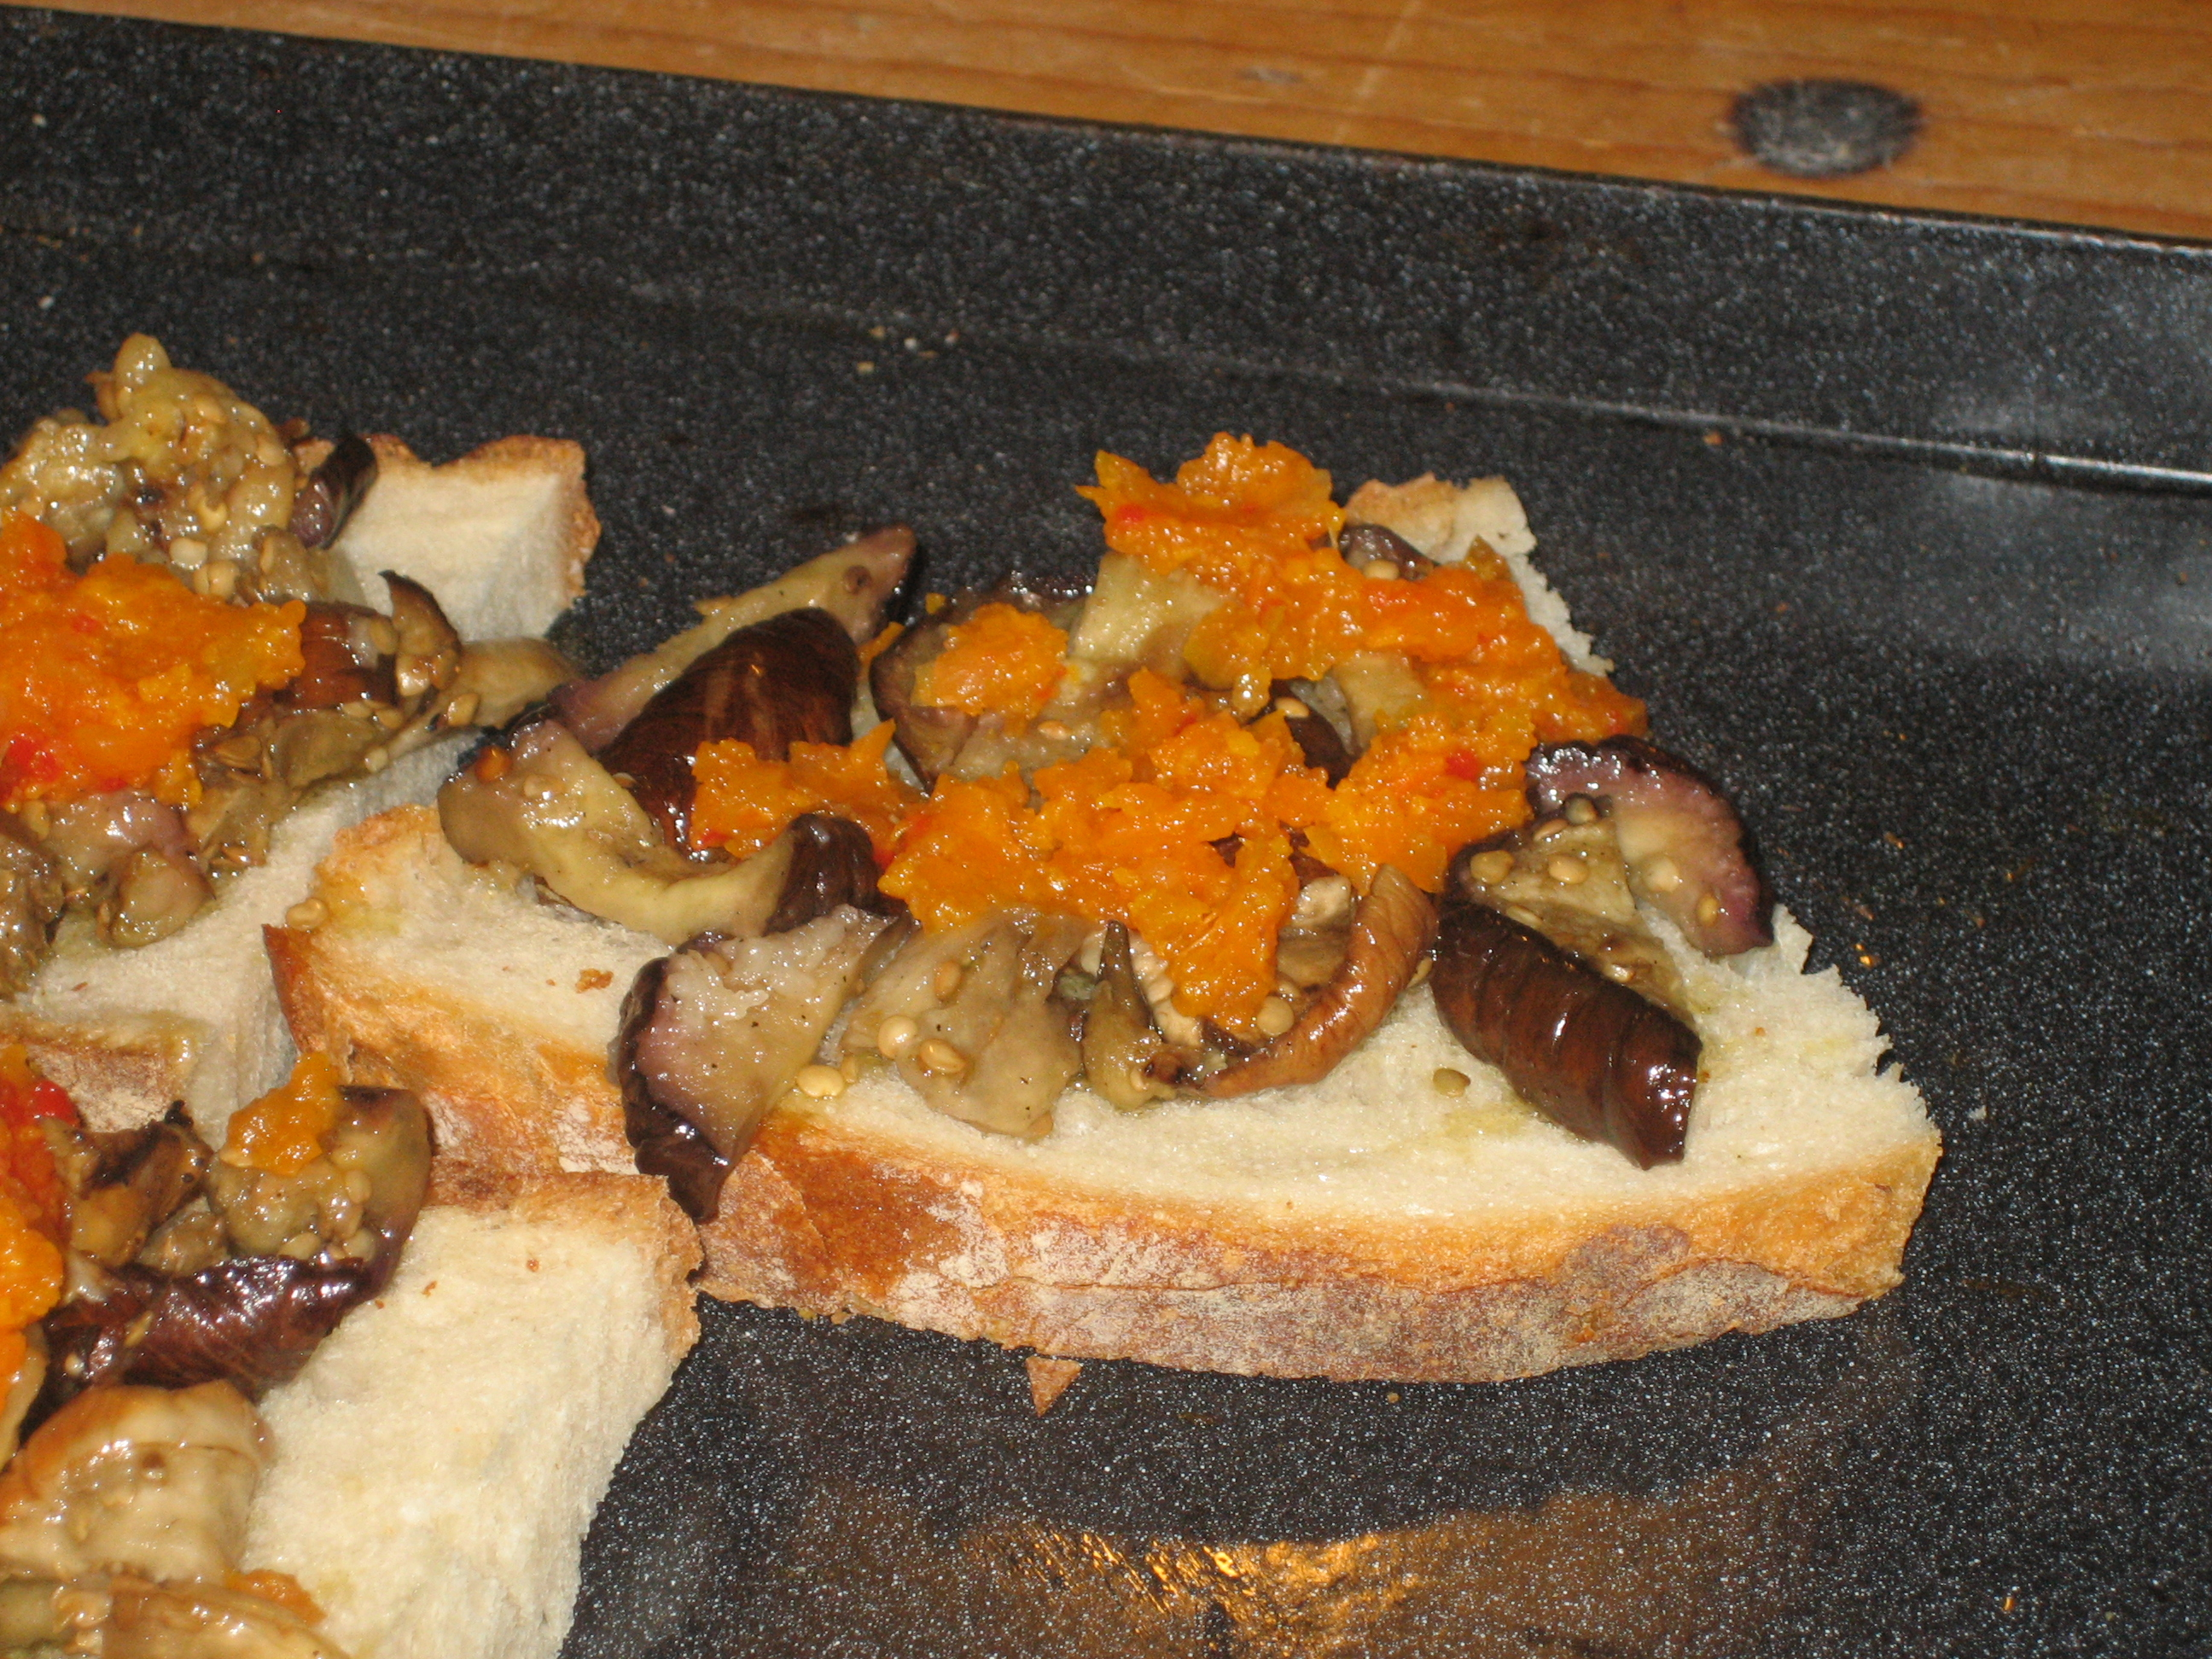 Grilled eggplant crostini with carrot relish